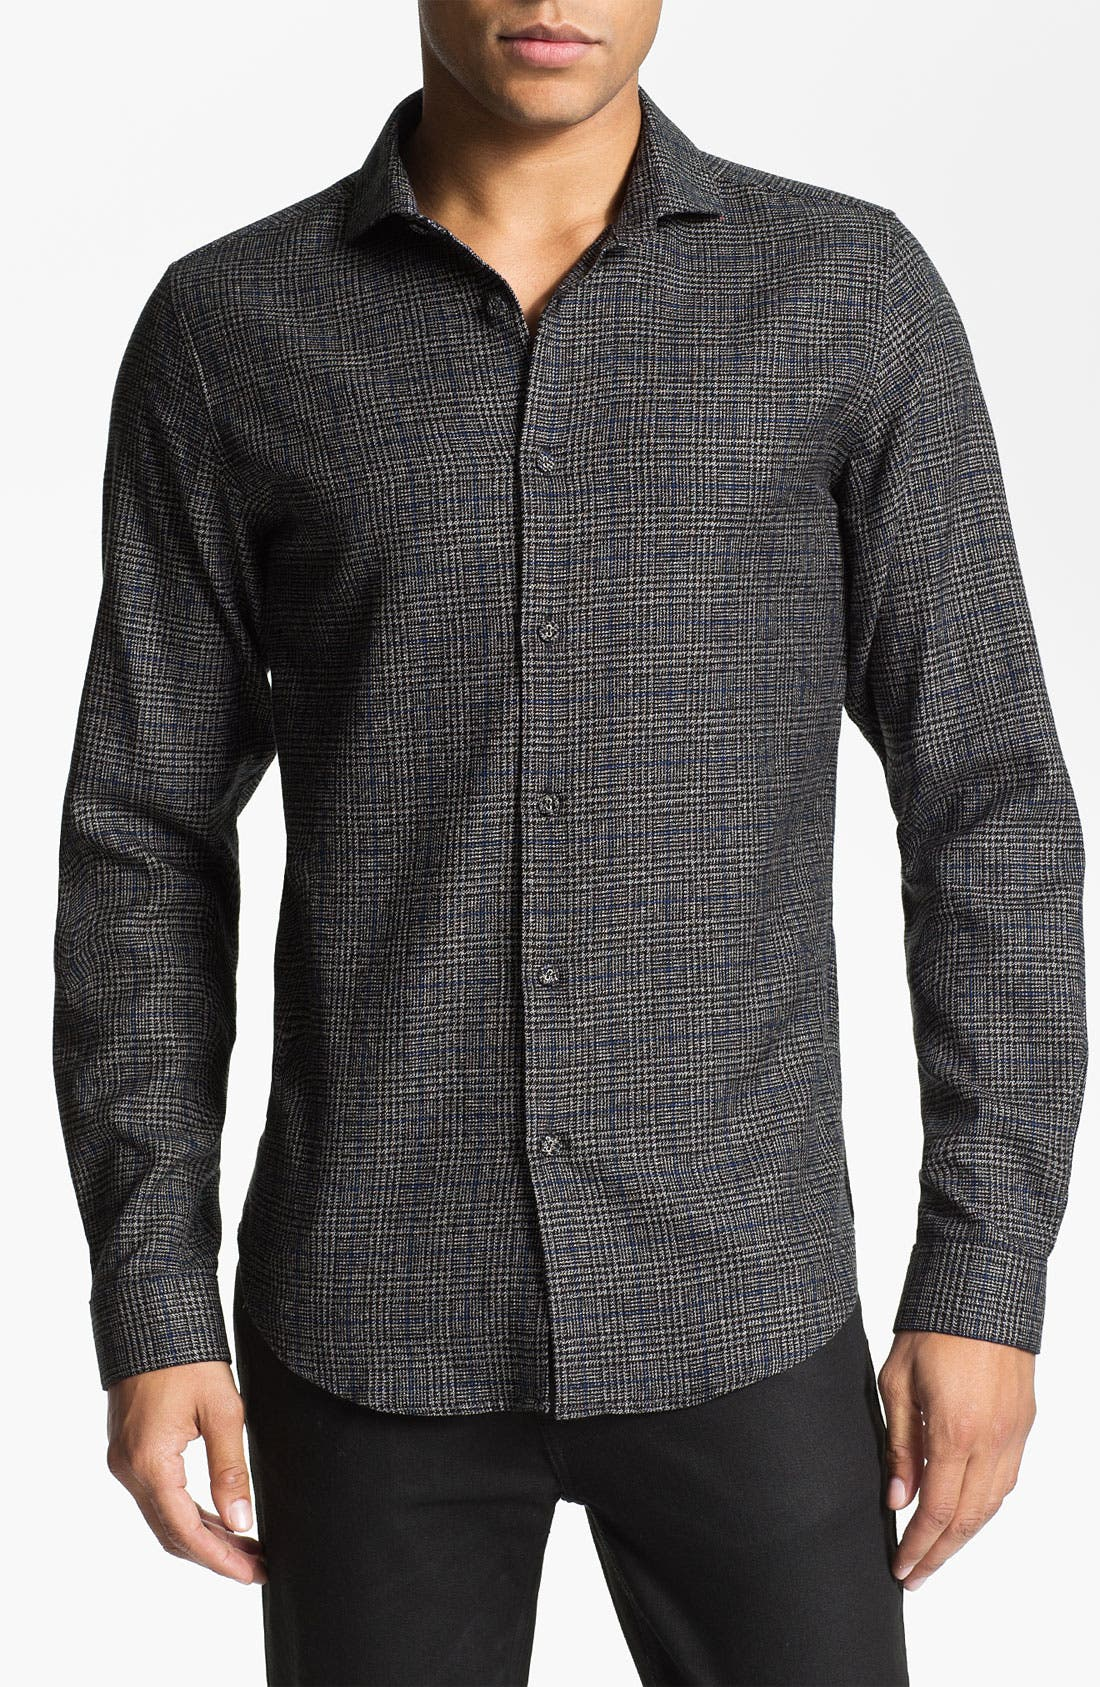 Main Image - PLECTRUM by Ben Sherman Plaid Woven Shirt